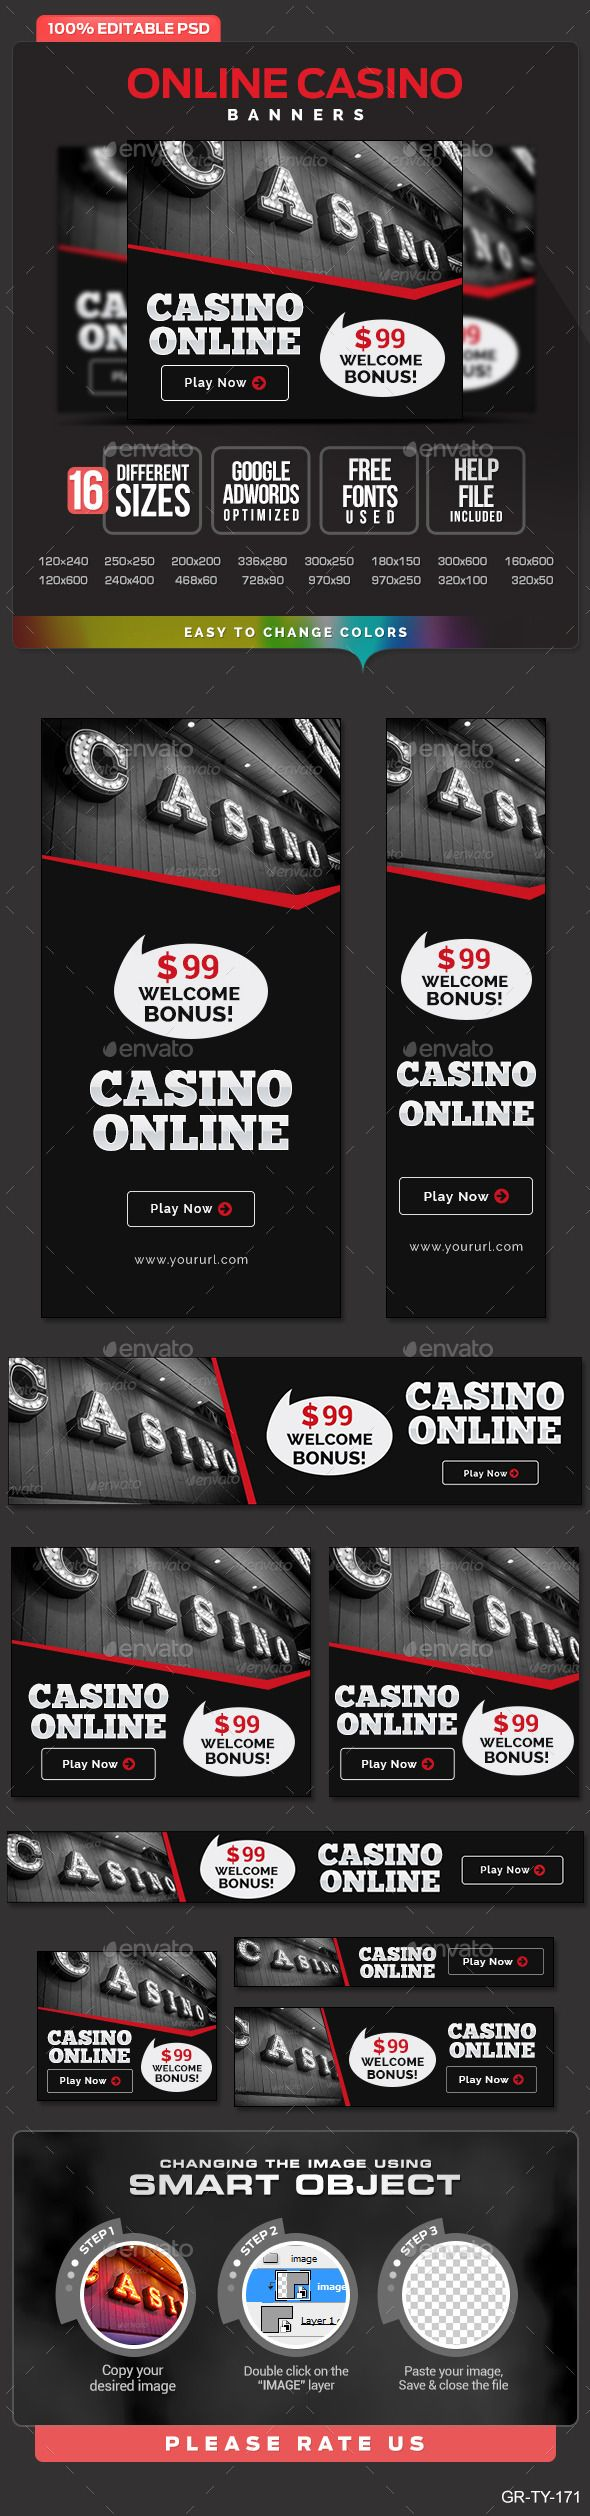 interactive casino games to download